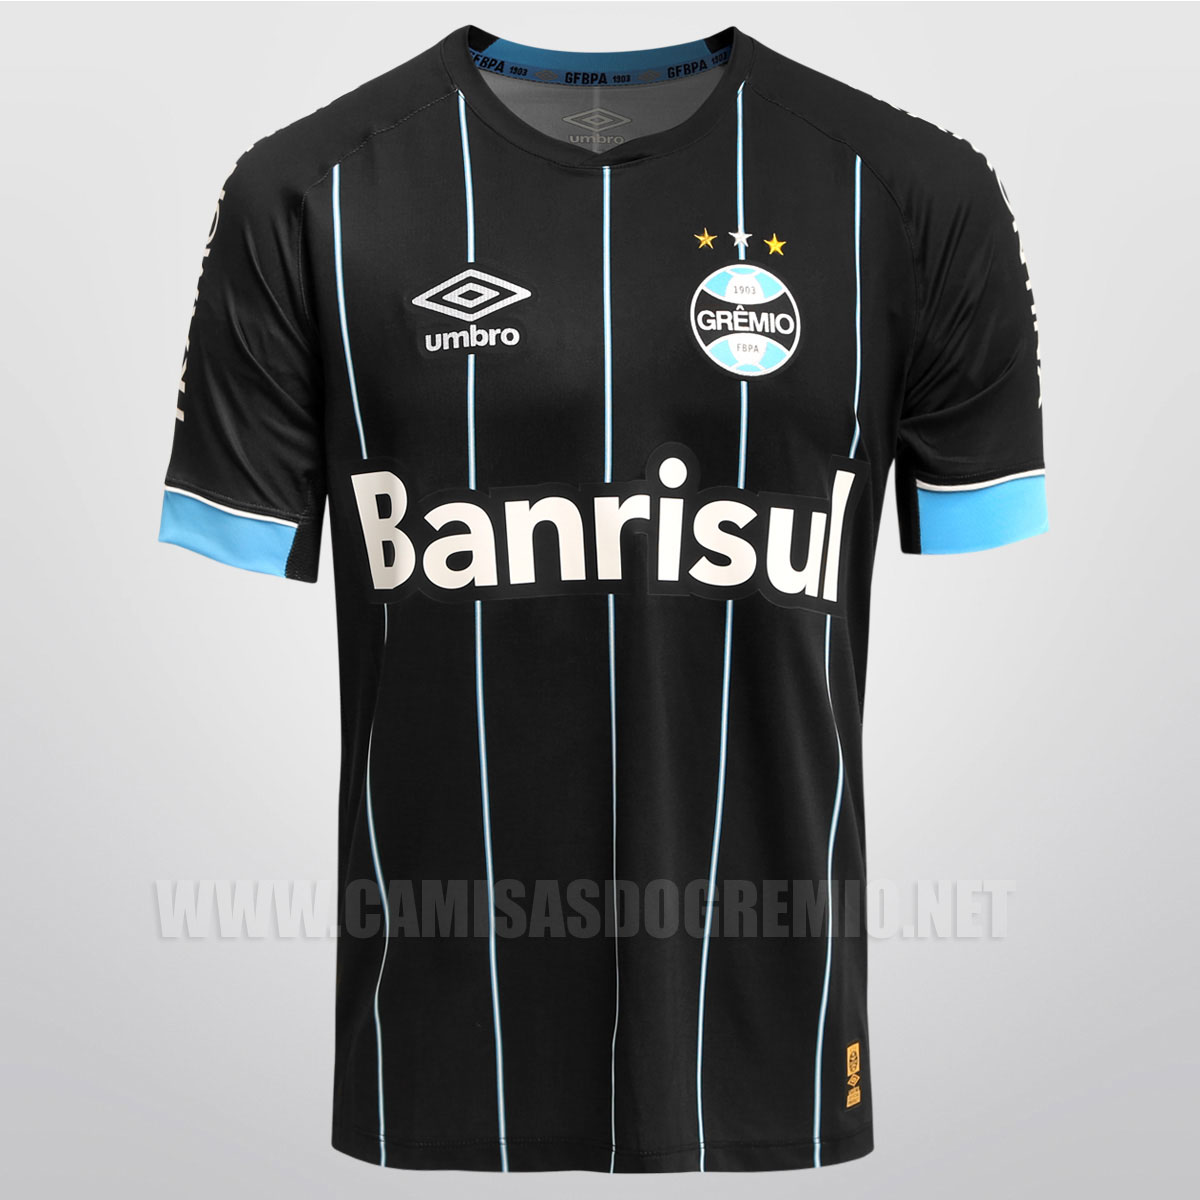 0633822bda Camisas do Grêmio » Umbro - Part 10